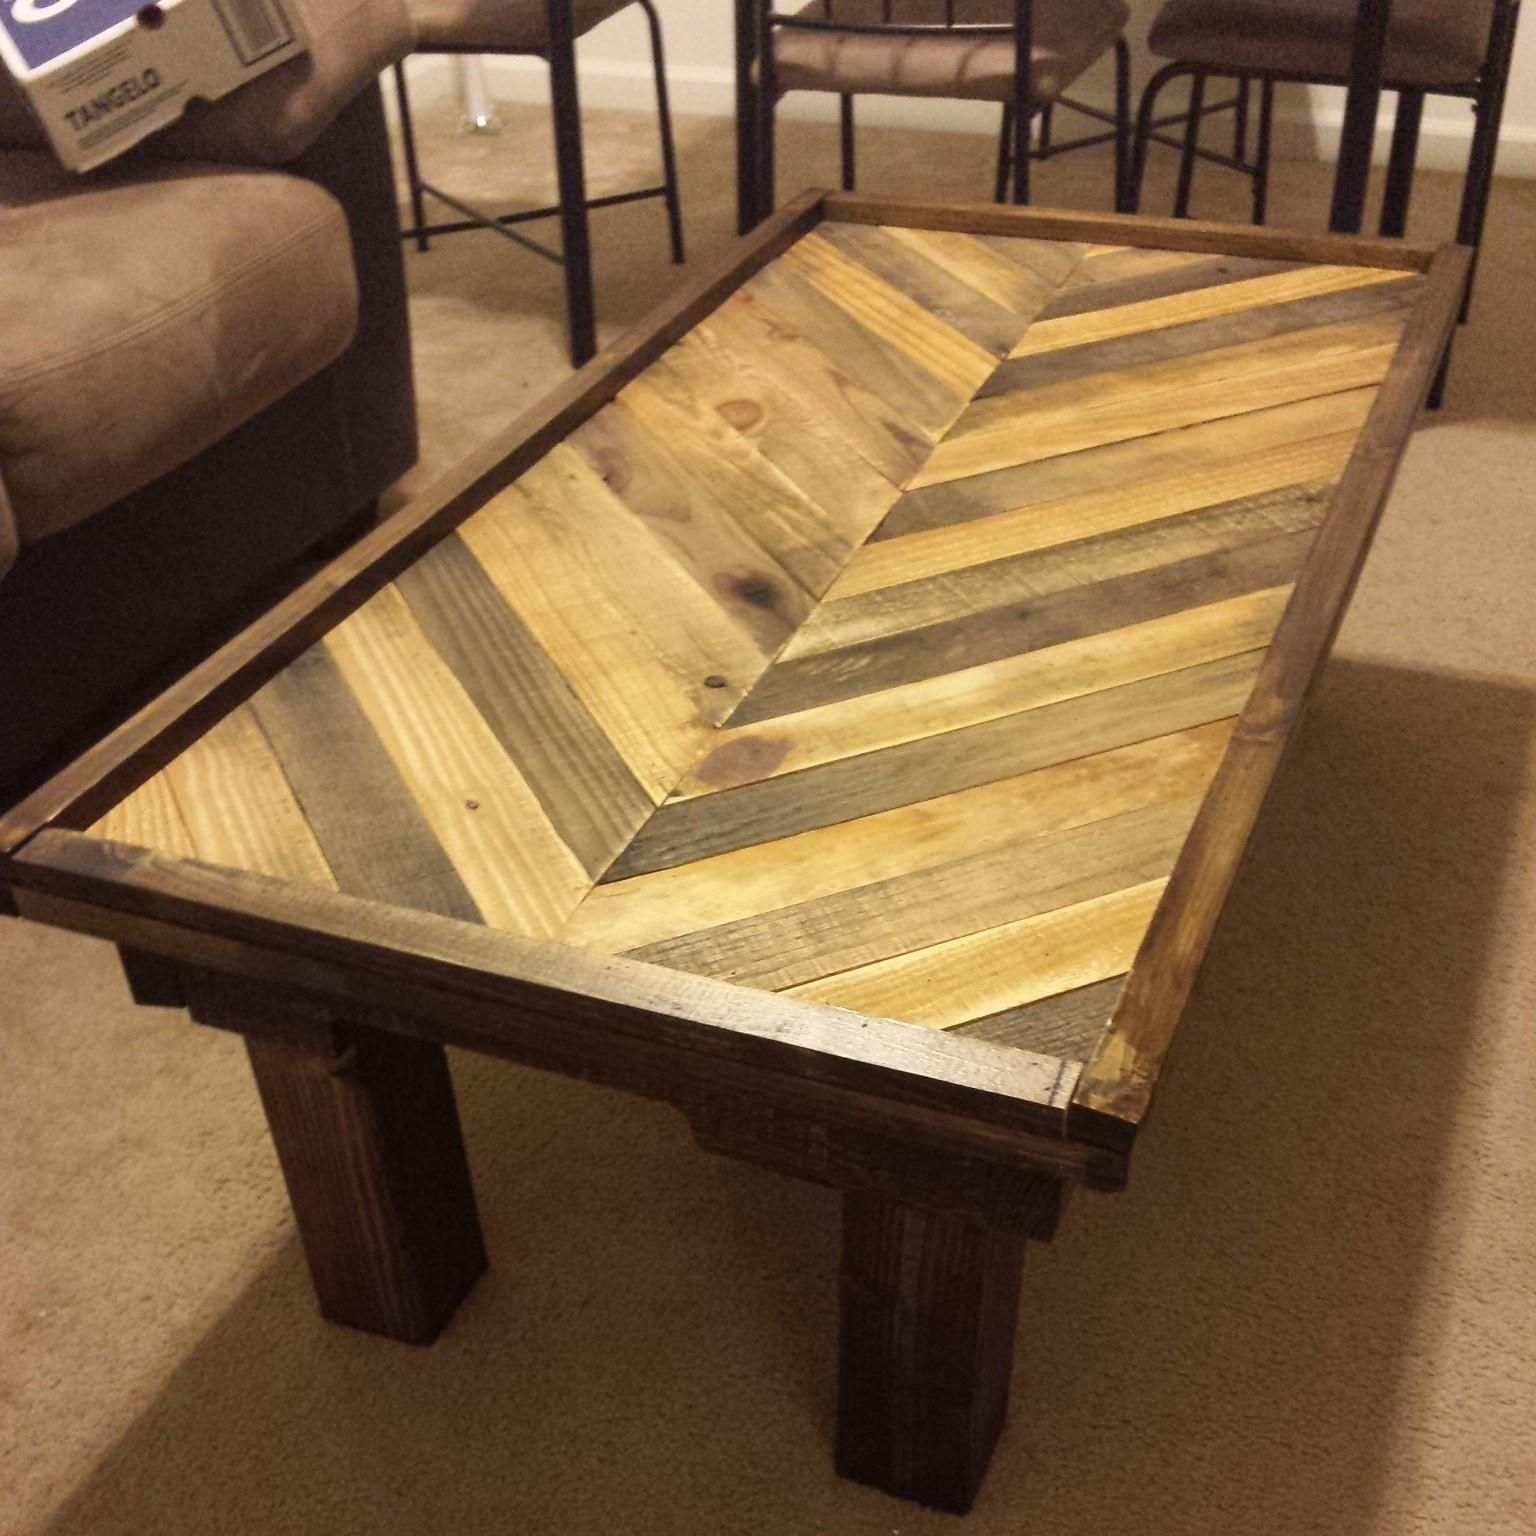 Pallet coffee table boards are 25 inches the table is 2 ft by 4 pallet coffee table boards are 25 inches the table is 2 ft by geotapseo Gallery